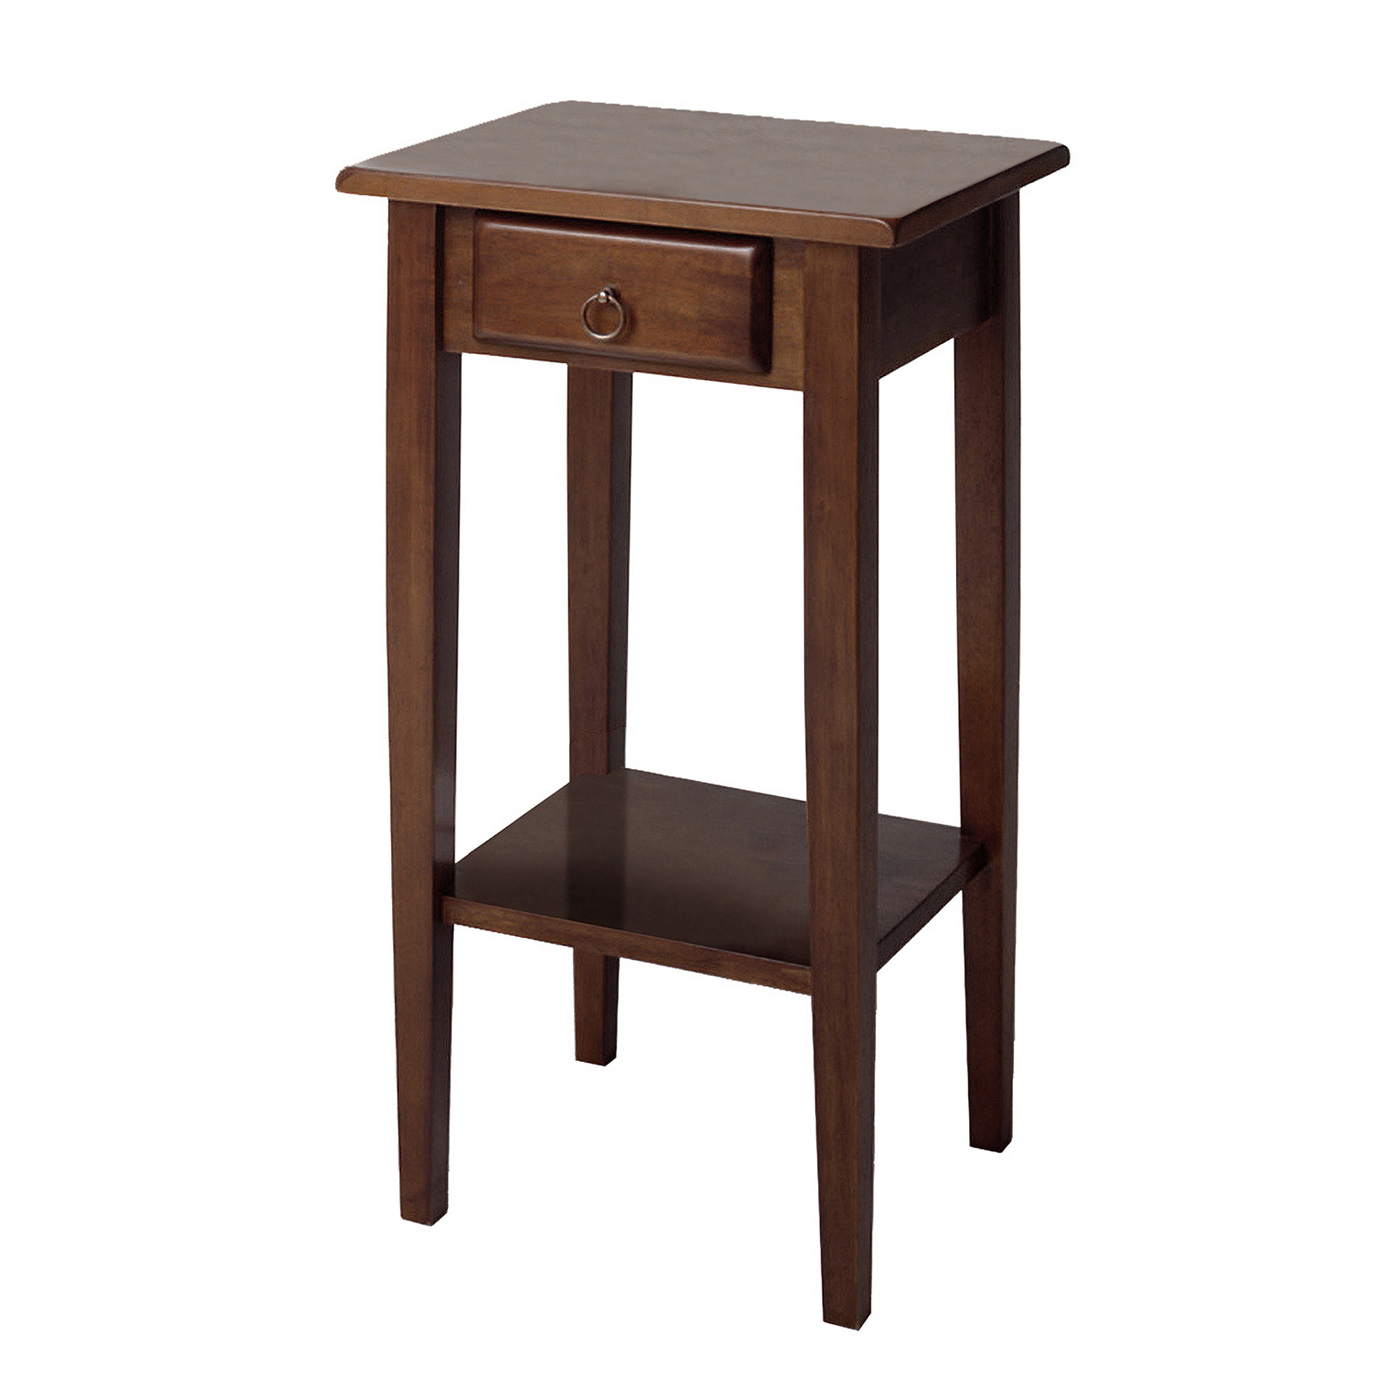 winsome wood regalia plant stand accent table with drawer new view larger wilcox furniture drop leaf sofa pottery barn plans target patio corner chair metal coffee set feature